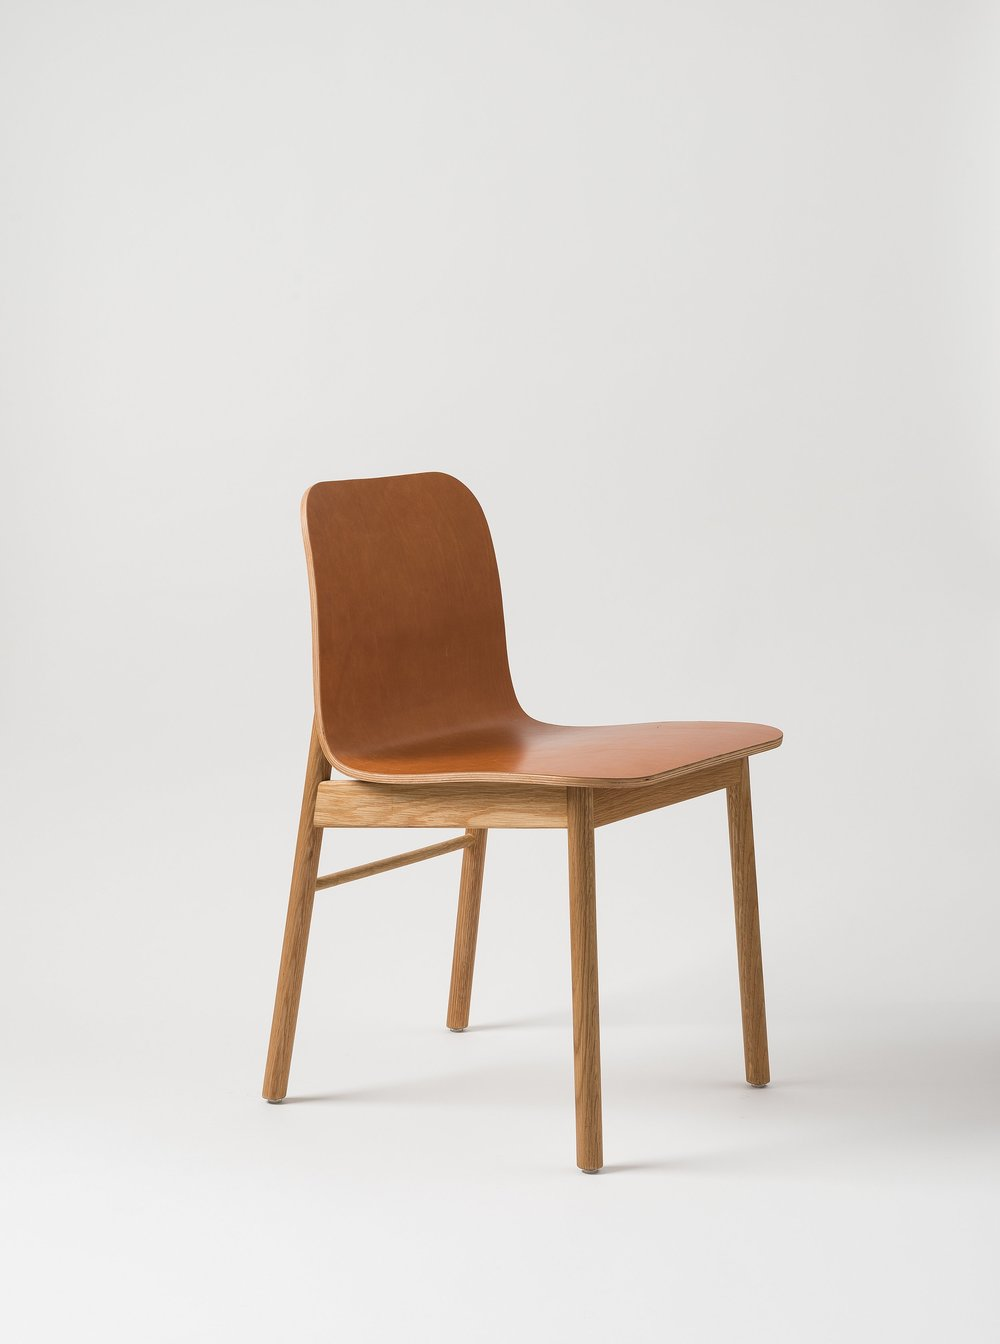 Aspen Chair w/ Wooden Legs $890